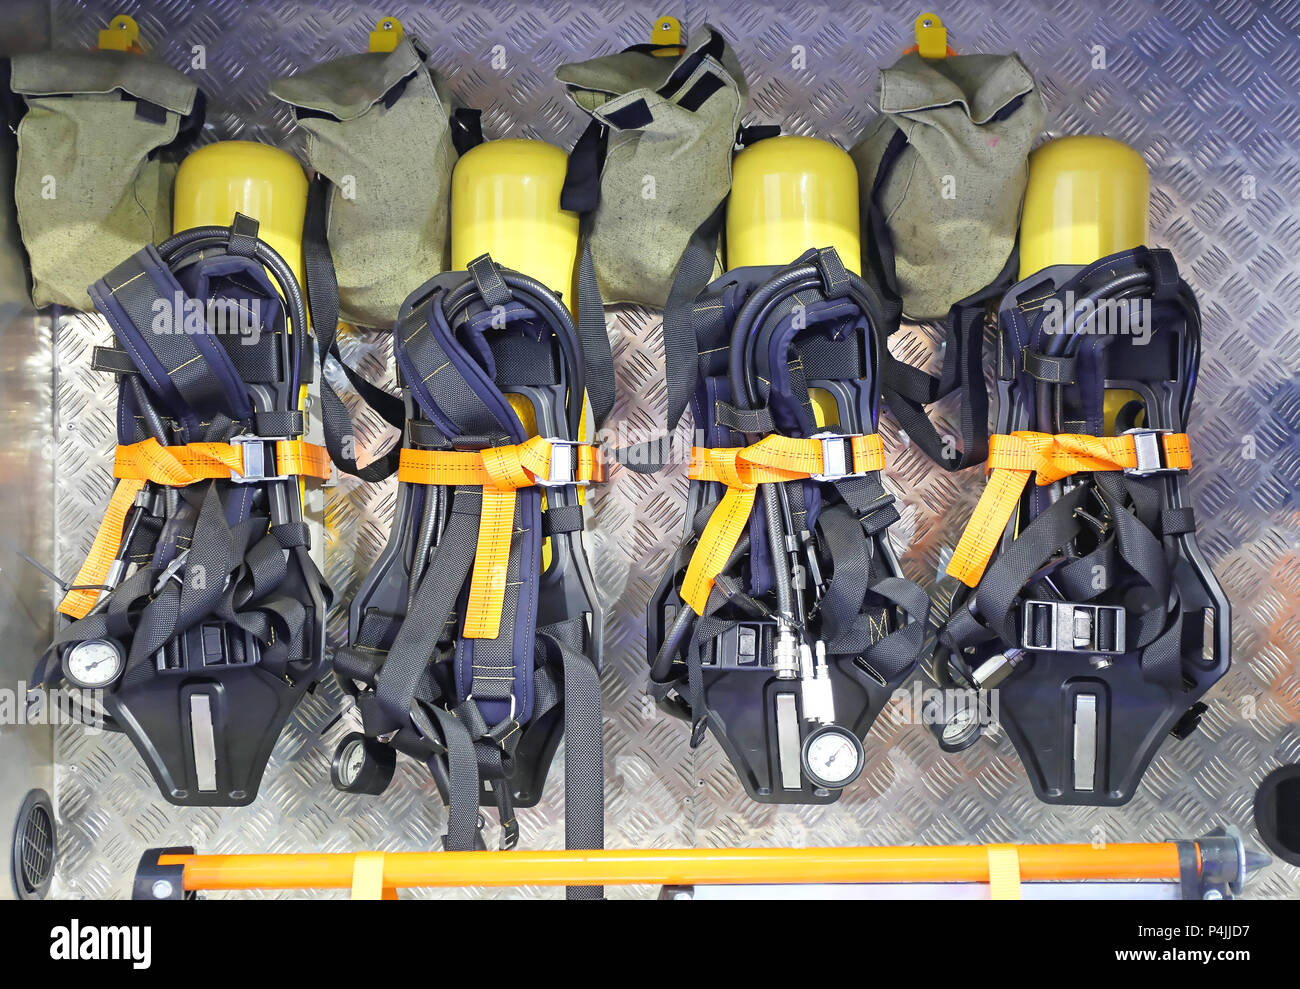 hight resolution of self contained breathing apparatus with compressed air for firefighters stock image